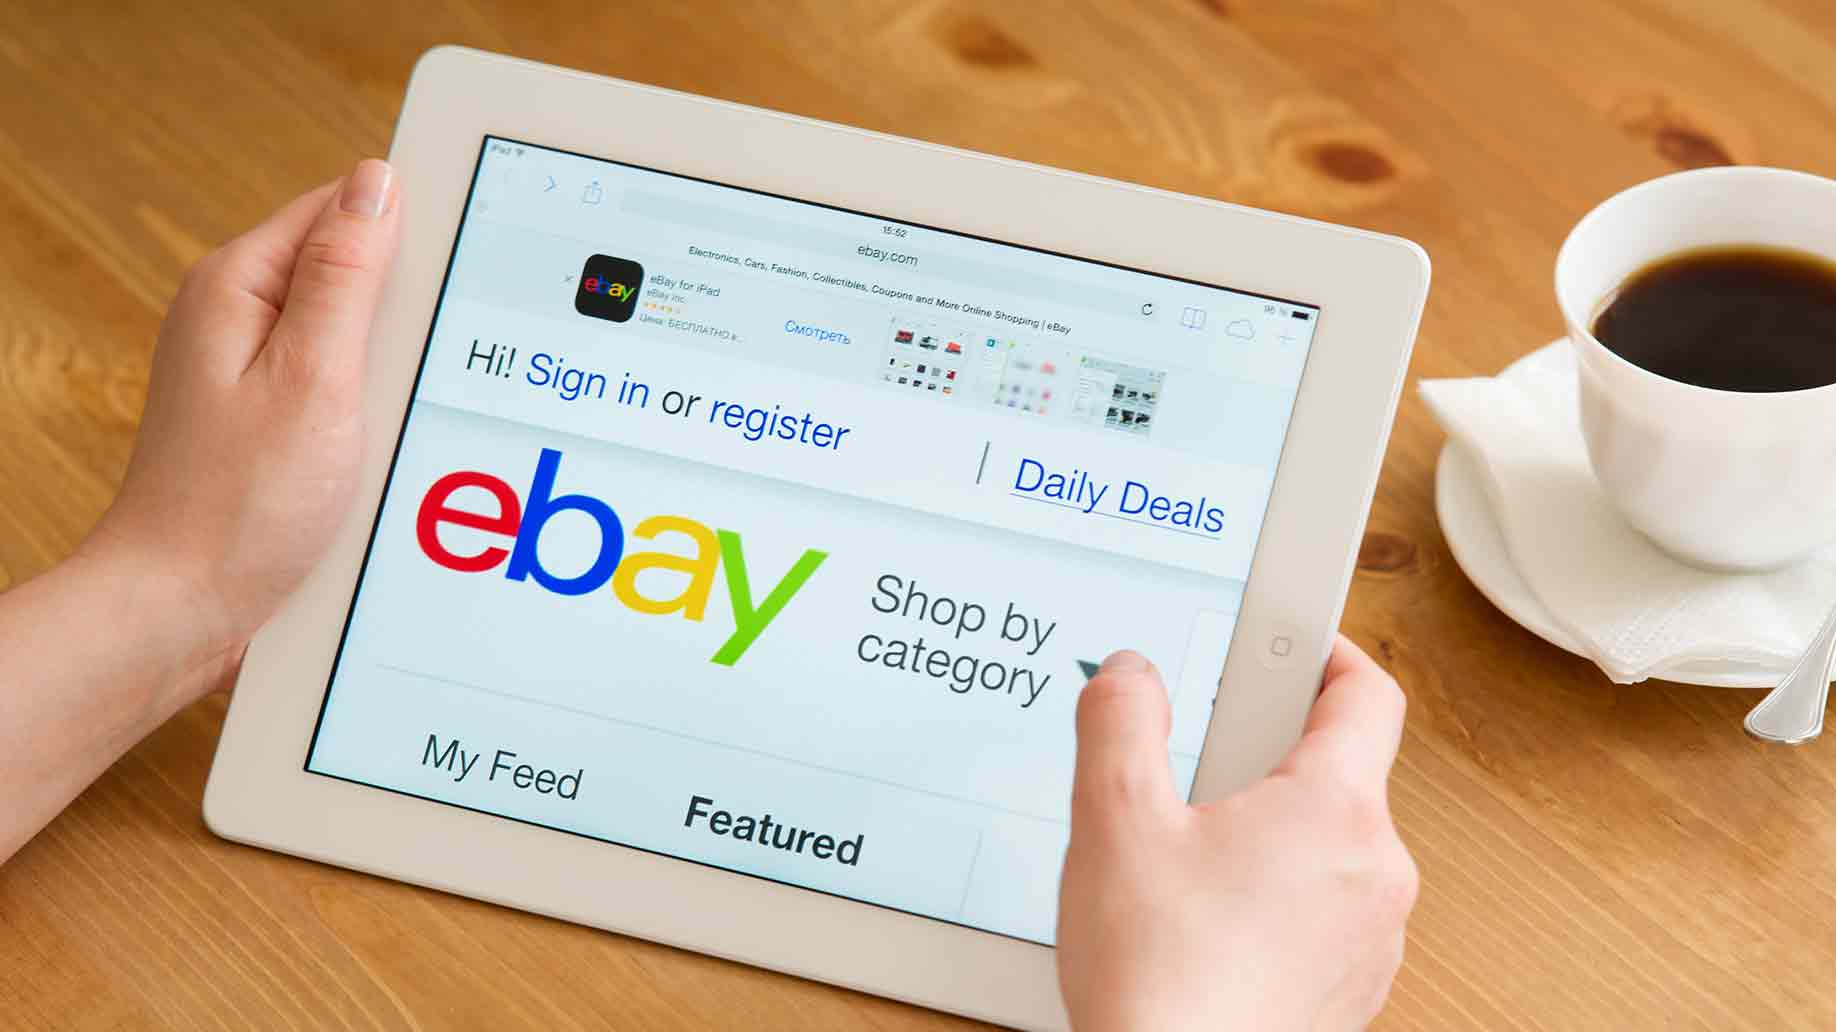 ebay's application website for mobile devices